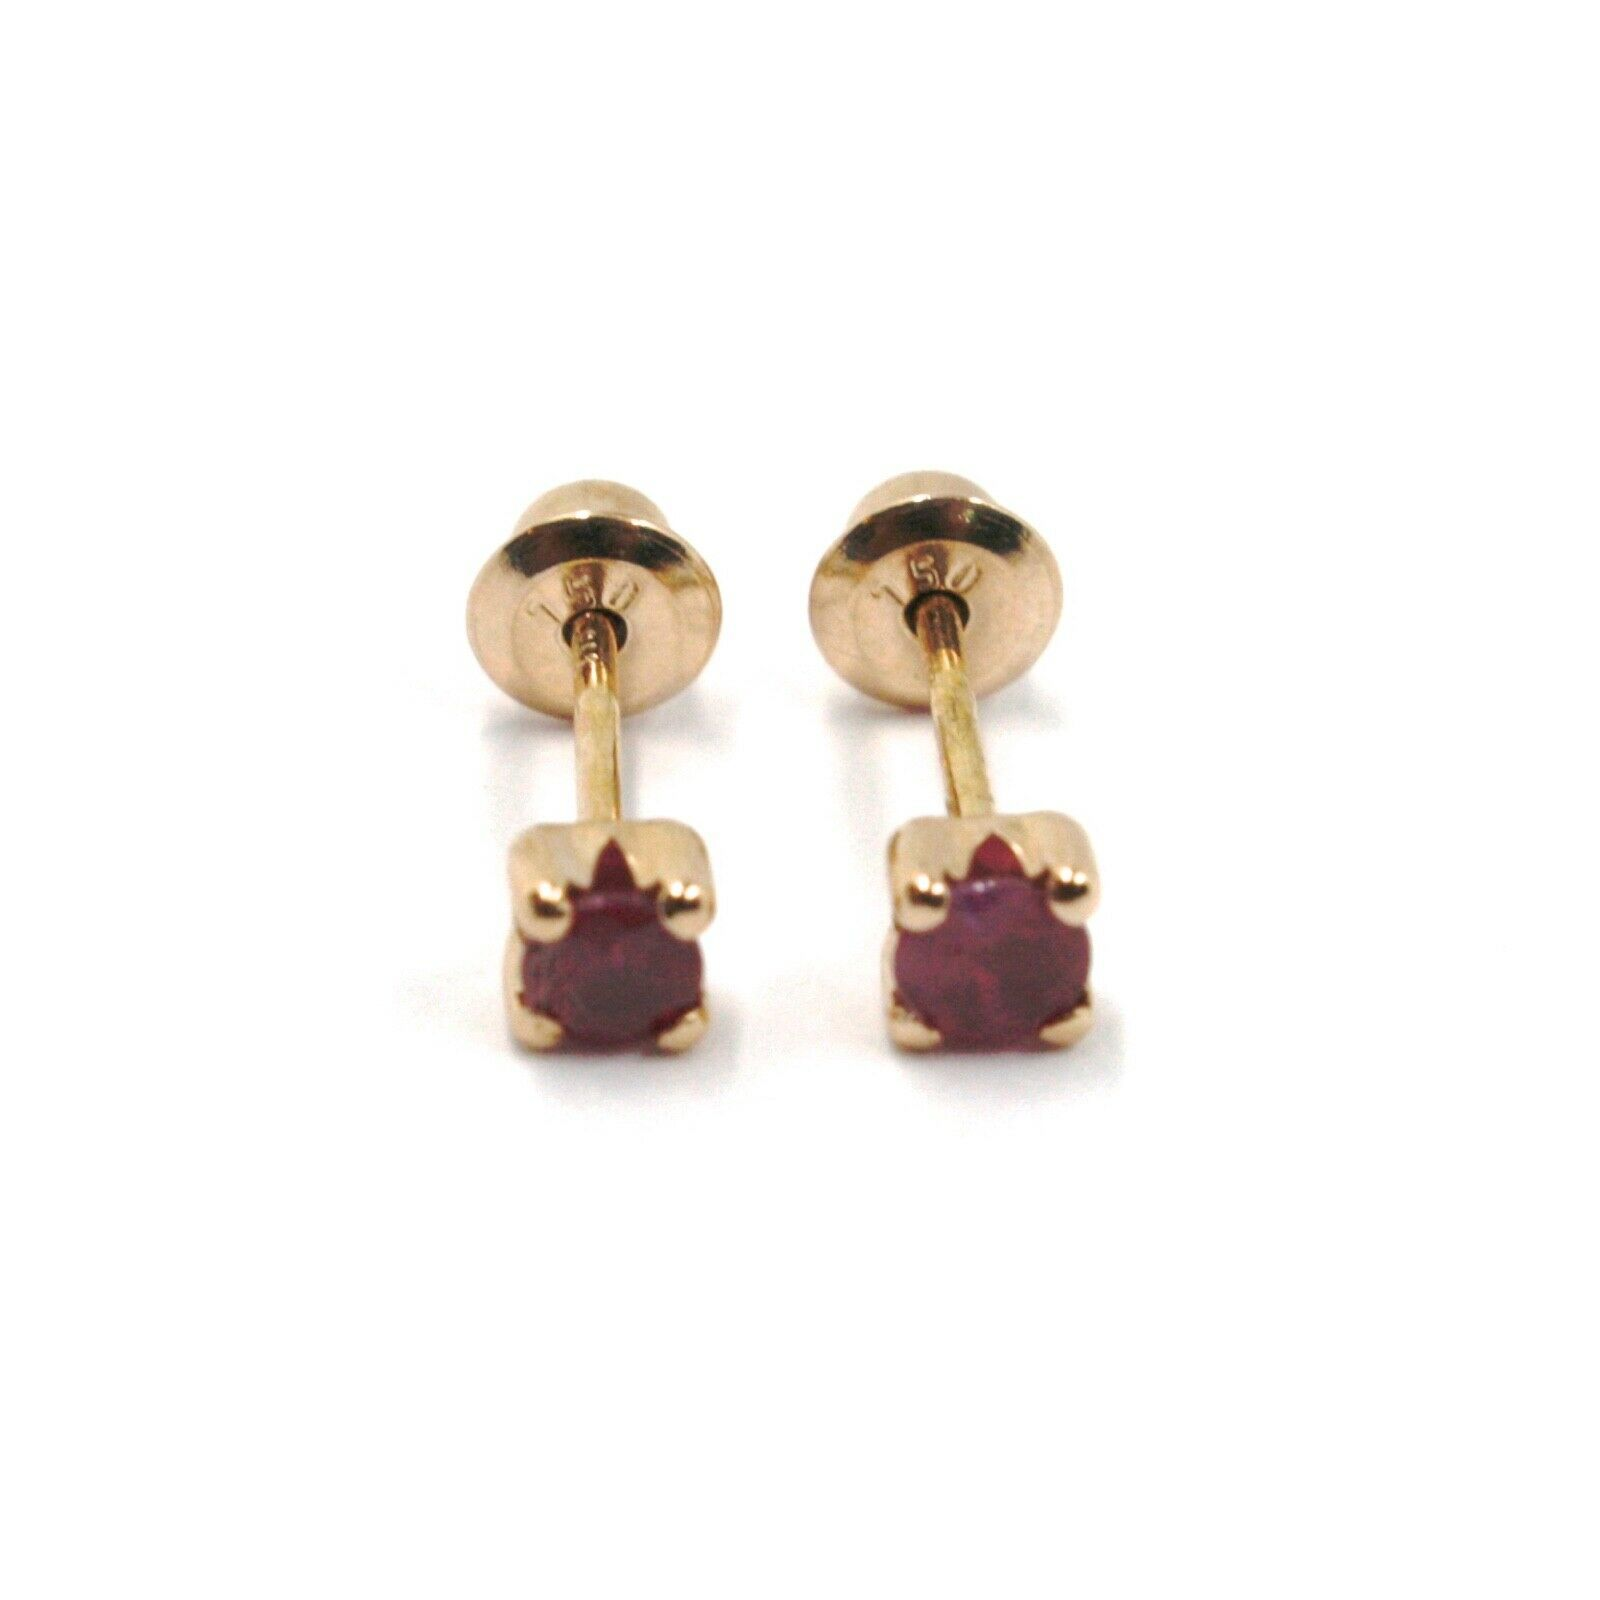 18K ROSE GOLD MINI EARRINGS WITH ROUND RED RUBY, DIAMETER 3 MM